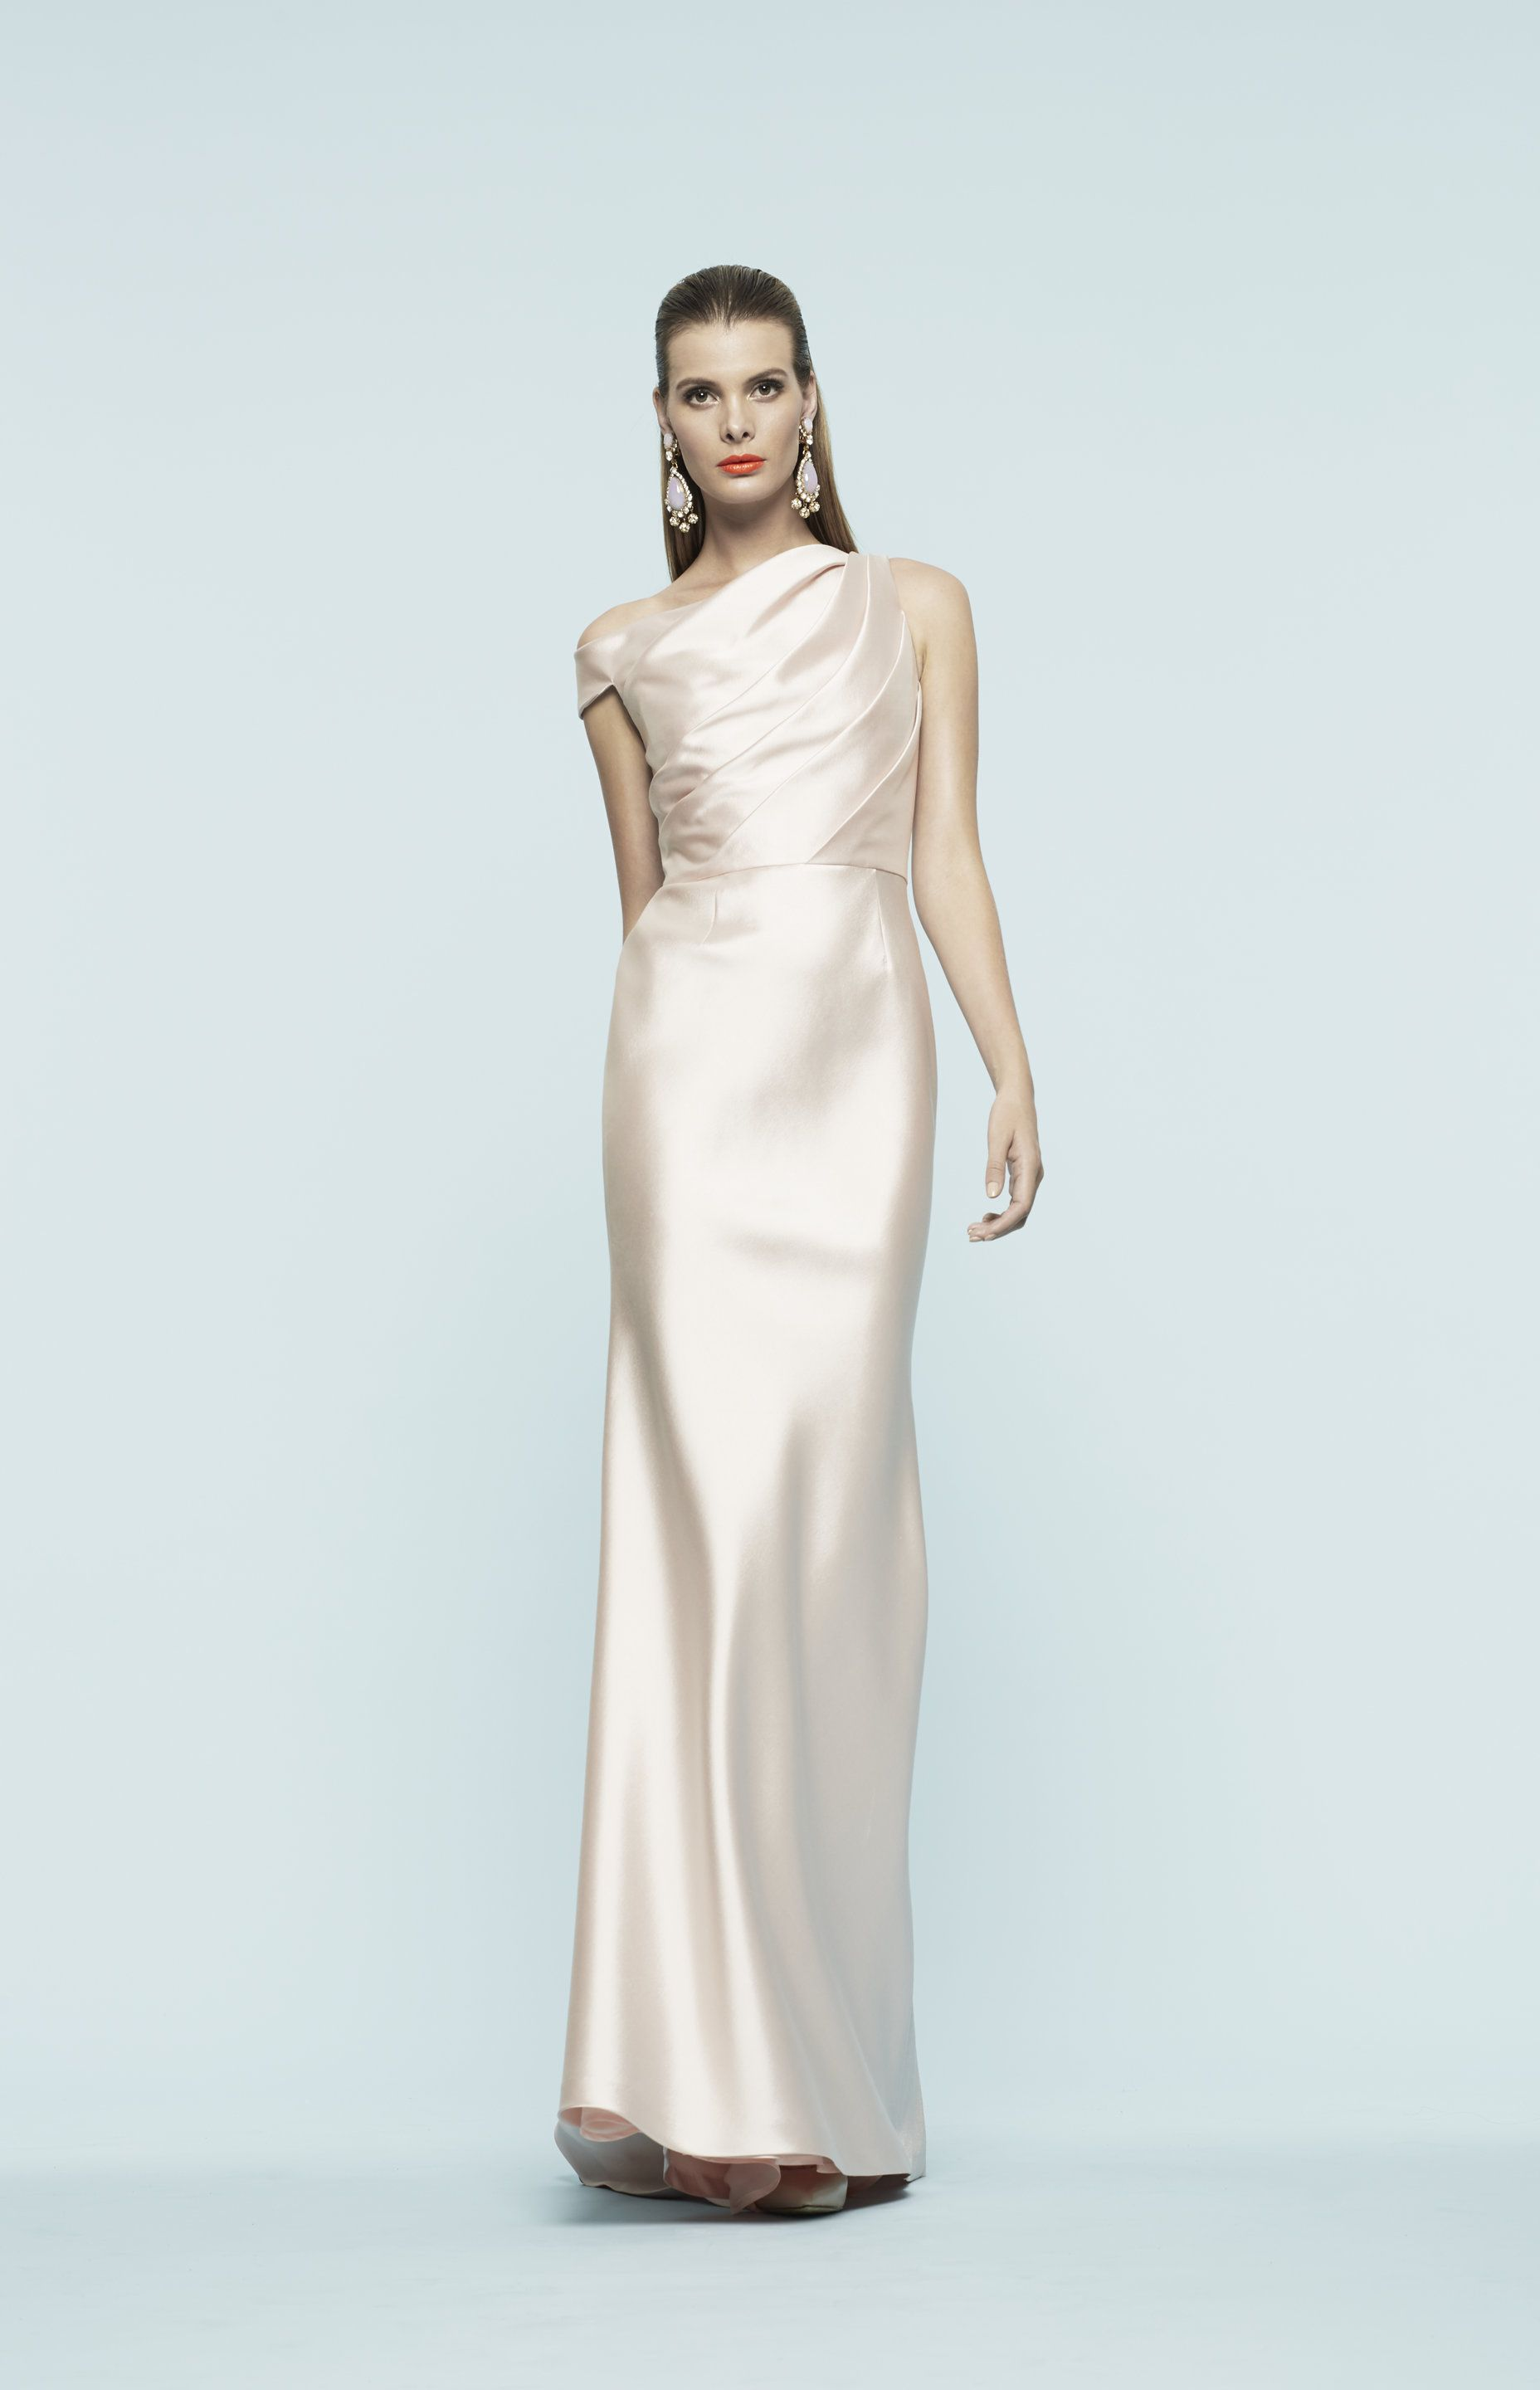 714bdc9f Sleek blush evening gown by Frascara. | Evening Gowns Fit For a Fête ...